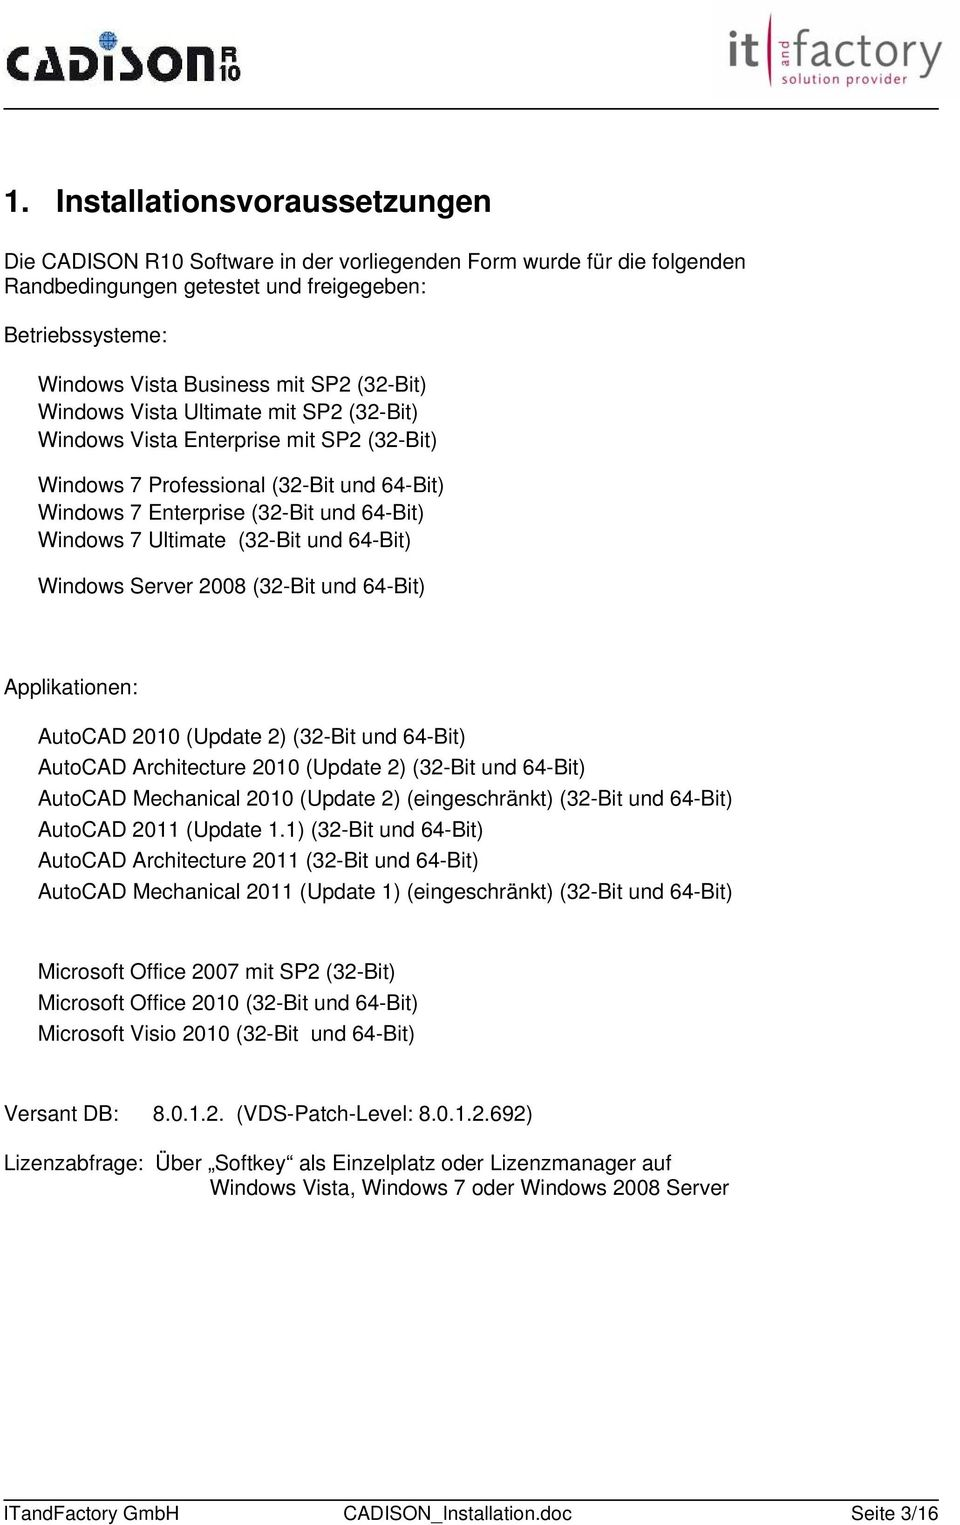 (32-Bit und 64-Bit) Windows Server 2008 (32-Bit und 64-Bit) Applikationen: AutoCAD 2010 (Update 2) (32-Bit und 64-Bit) AutoCAD Architecture 2010 (Update 2) (32-Bit und 64-Bit) AutoCAD Mechanical 2010